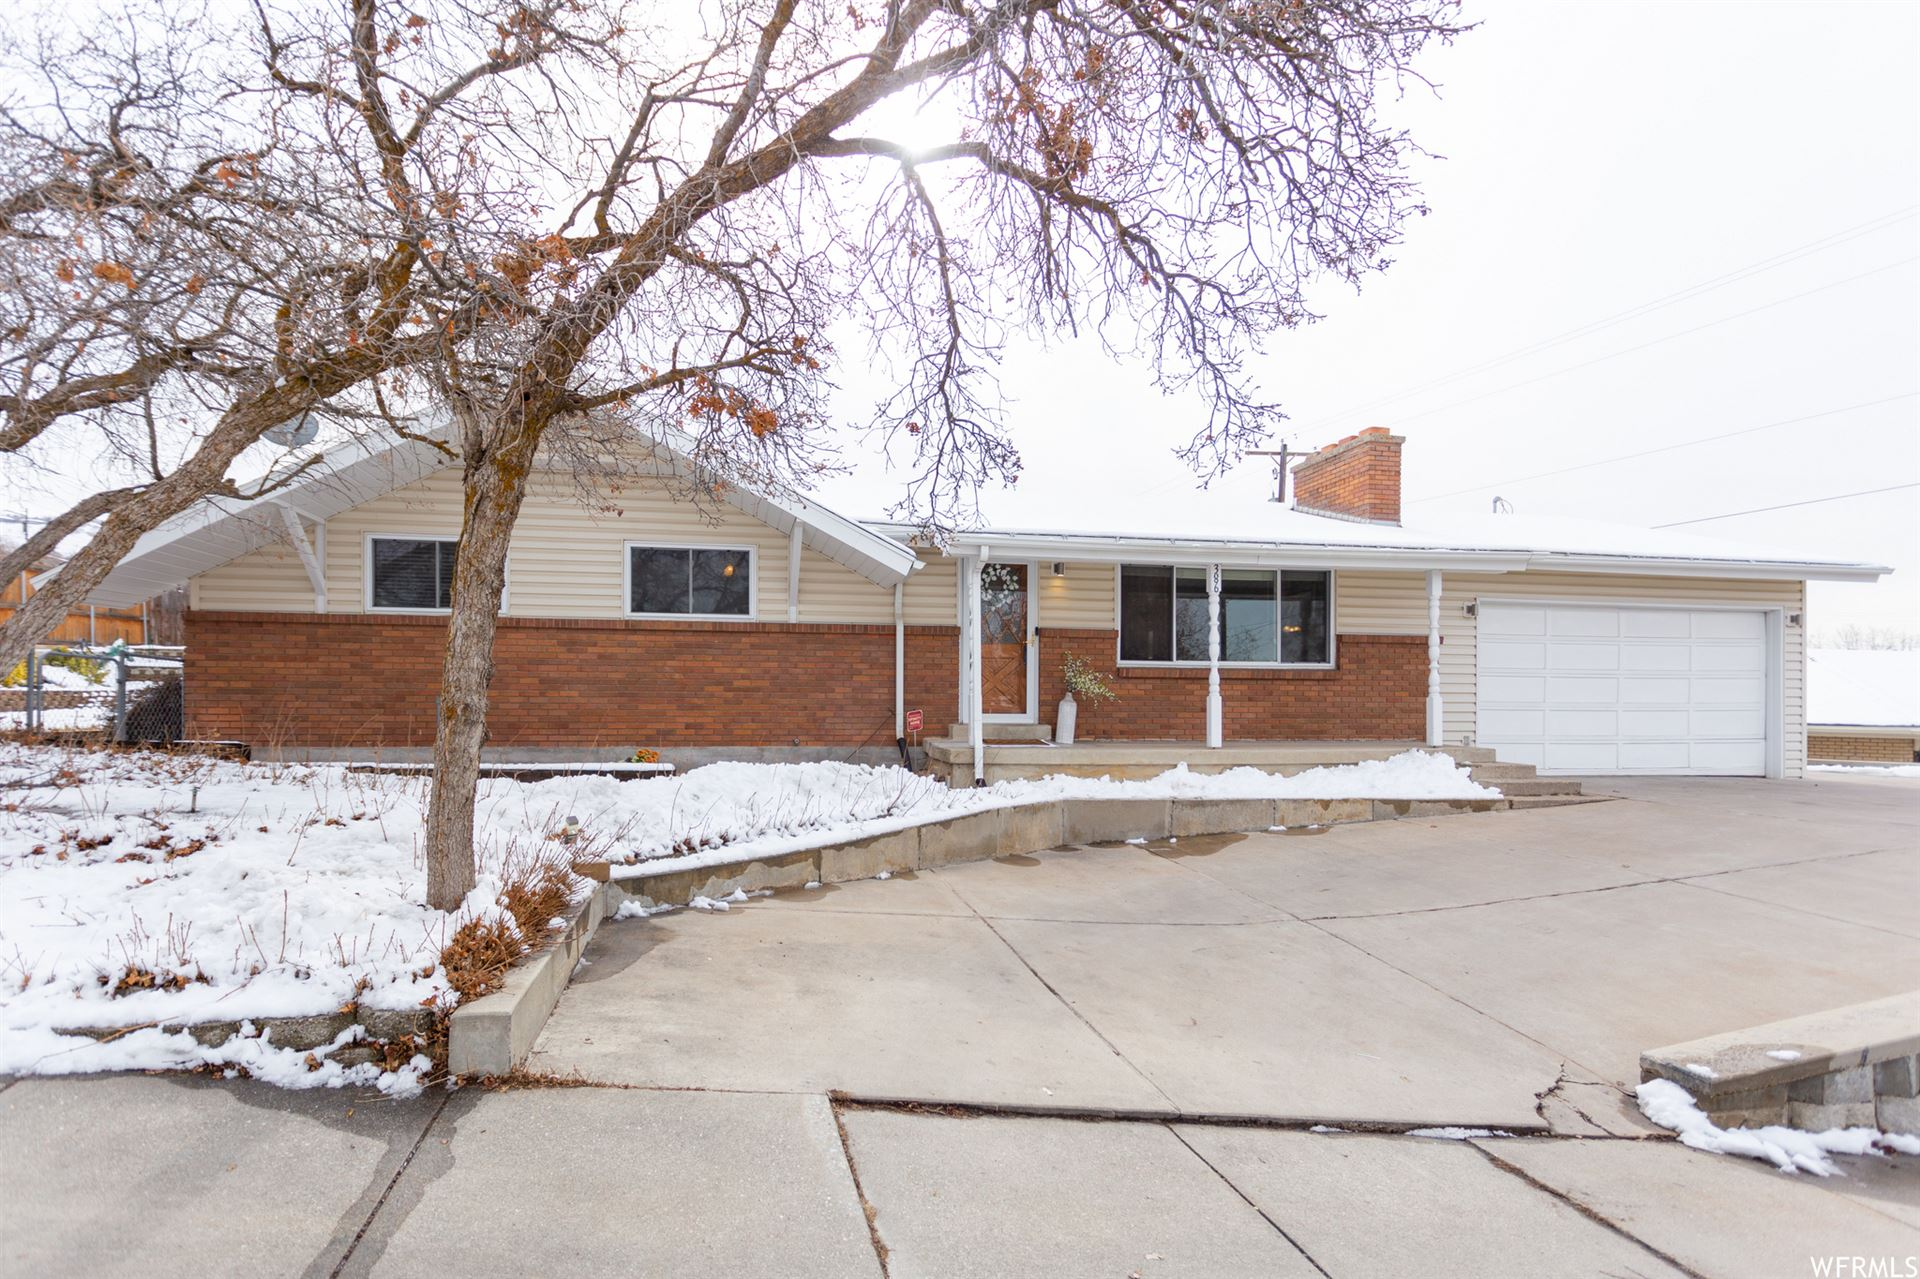 Photo of 386 E 2100 S, Bountiful, UT 84010 (MLS # 1723086)